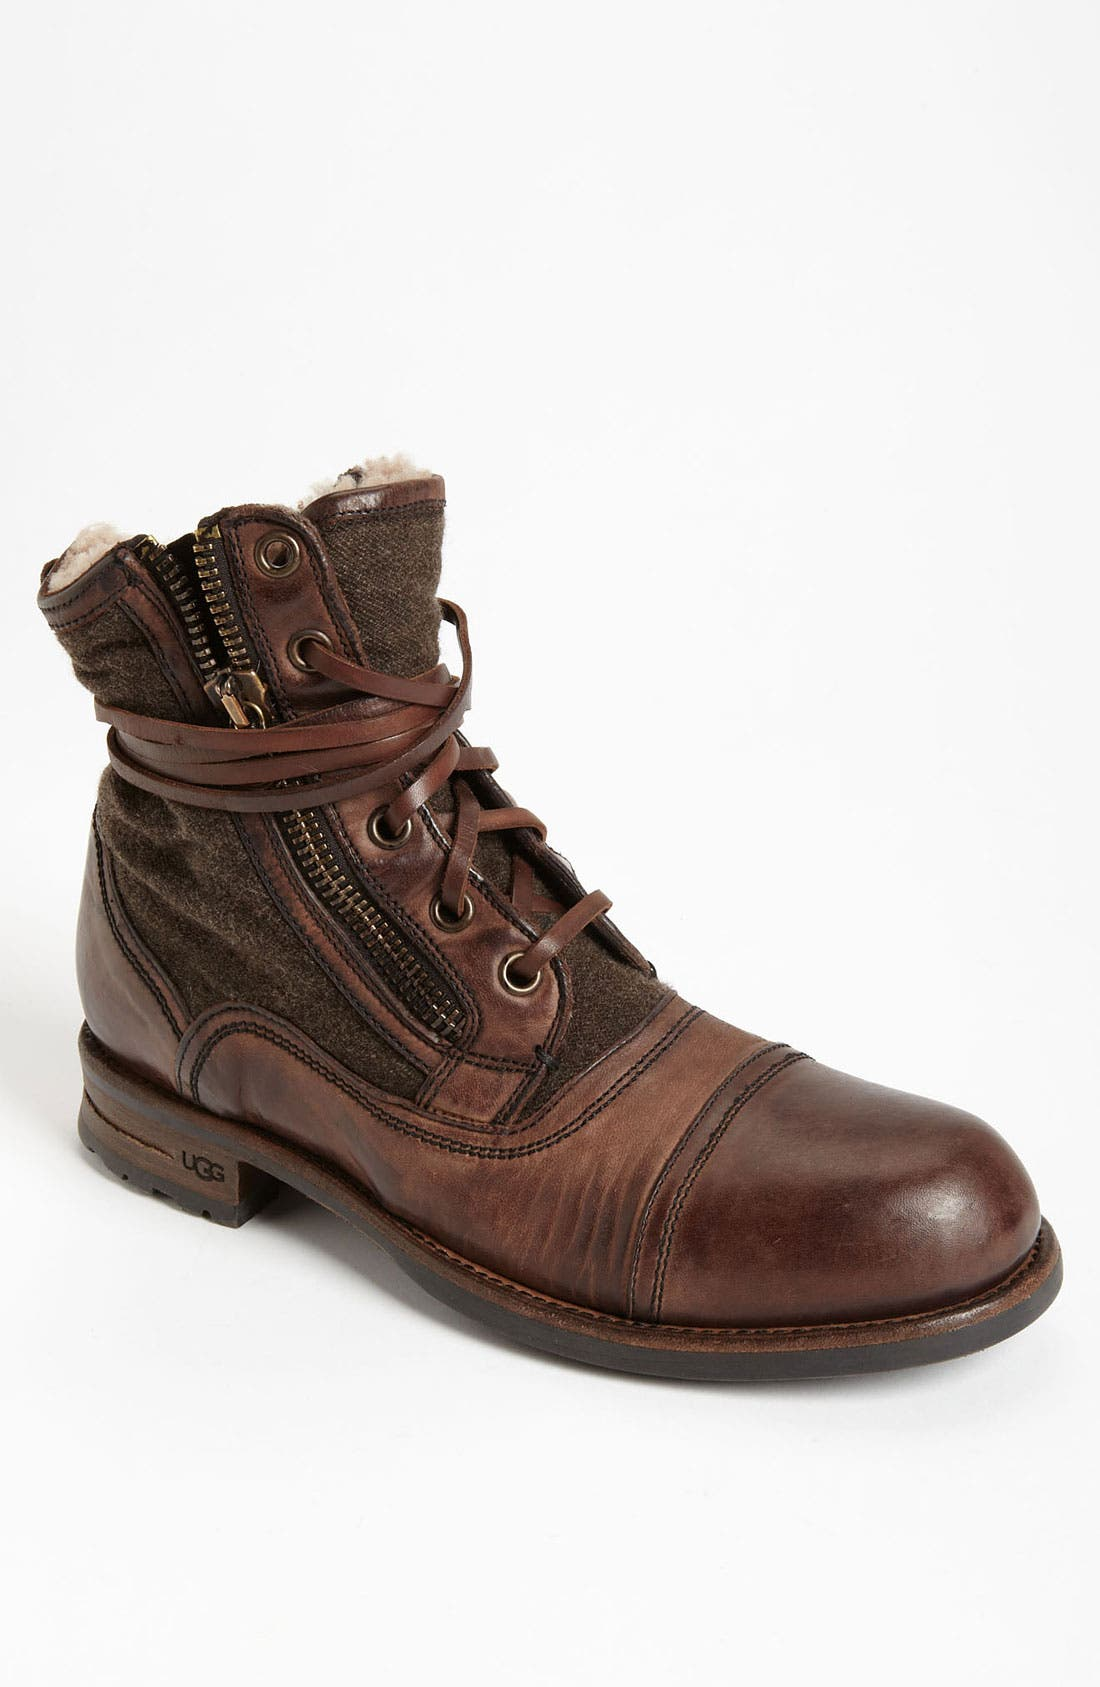 Alternate Image 1 Selected - UGG® Collection 'Tonio' Cap Toe Boot (Men)